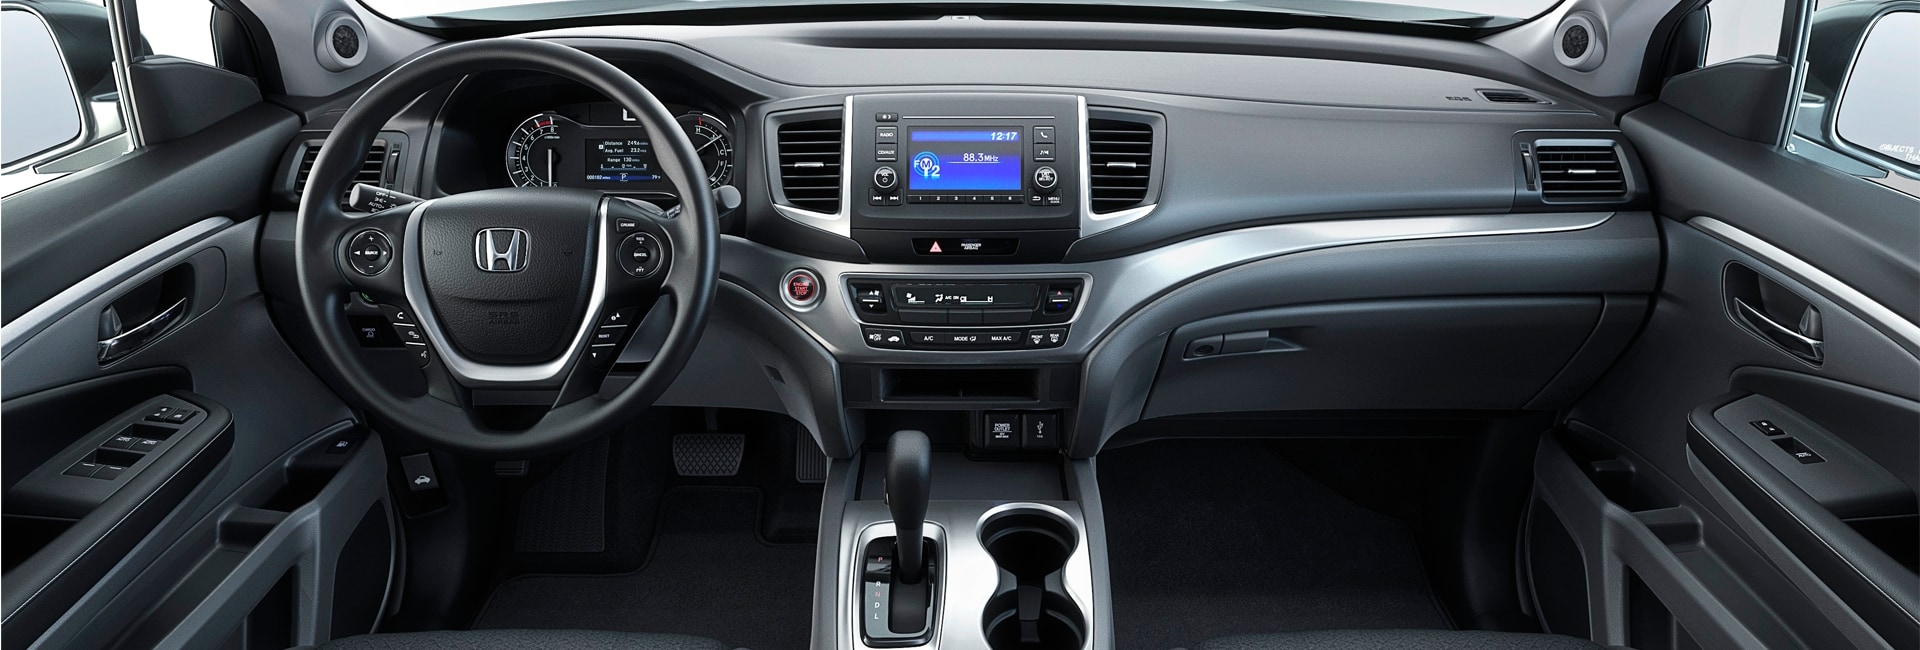 Honda Ridgeline Interior Features